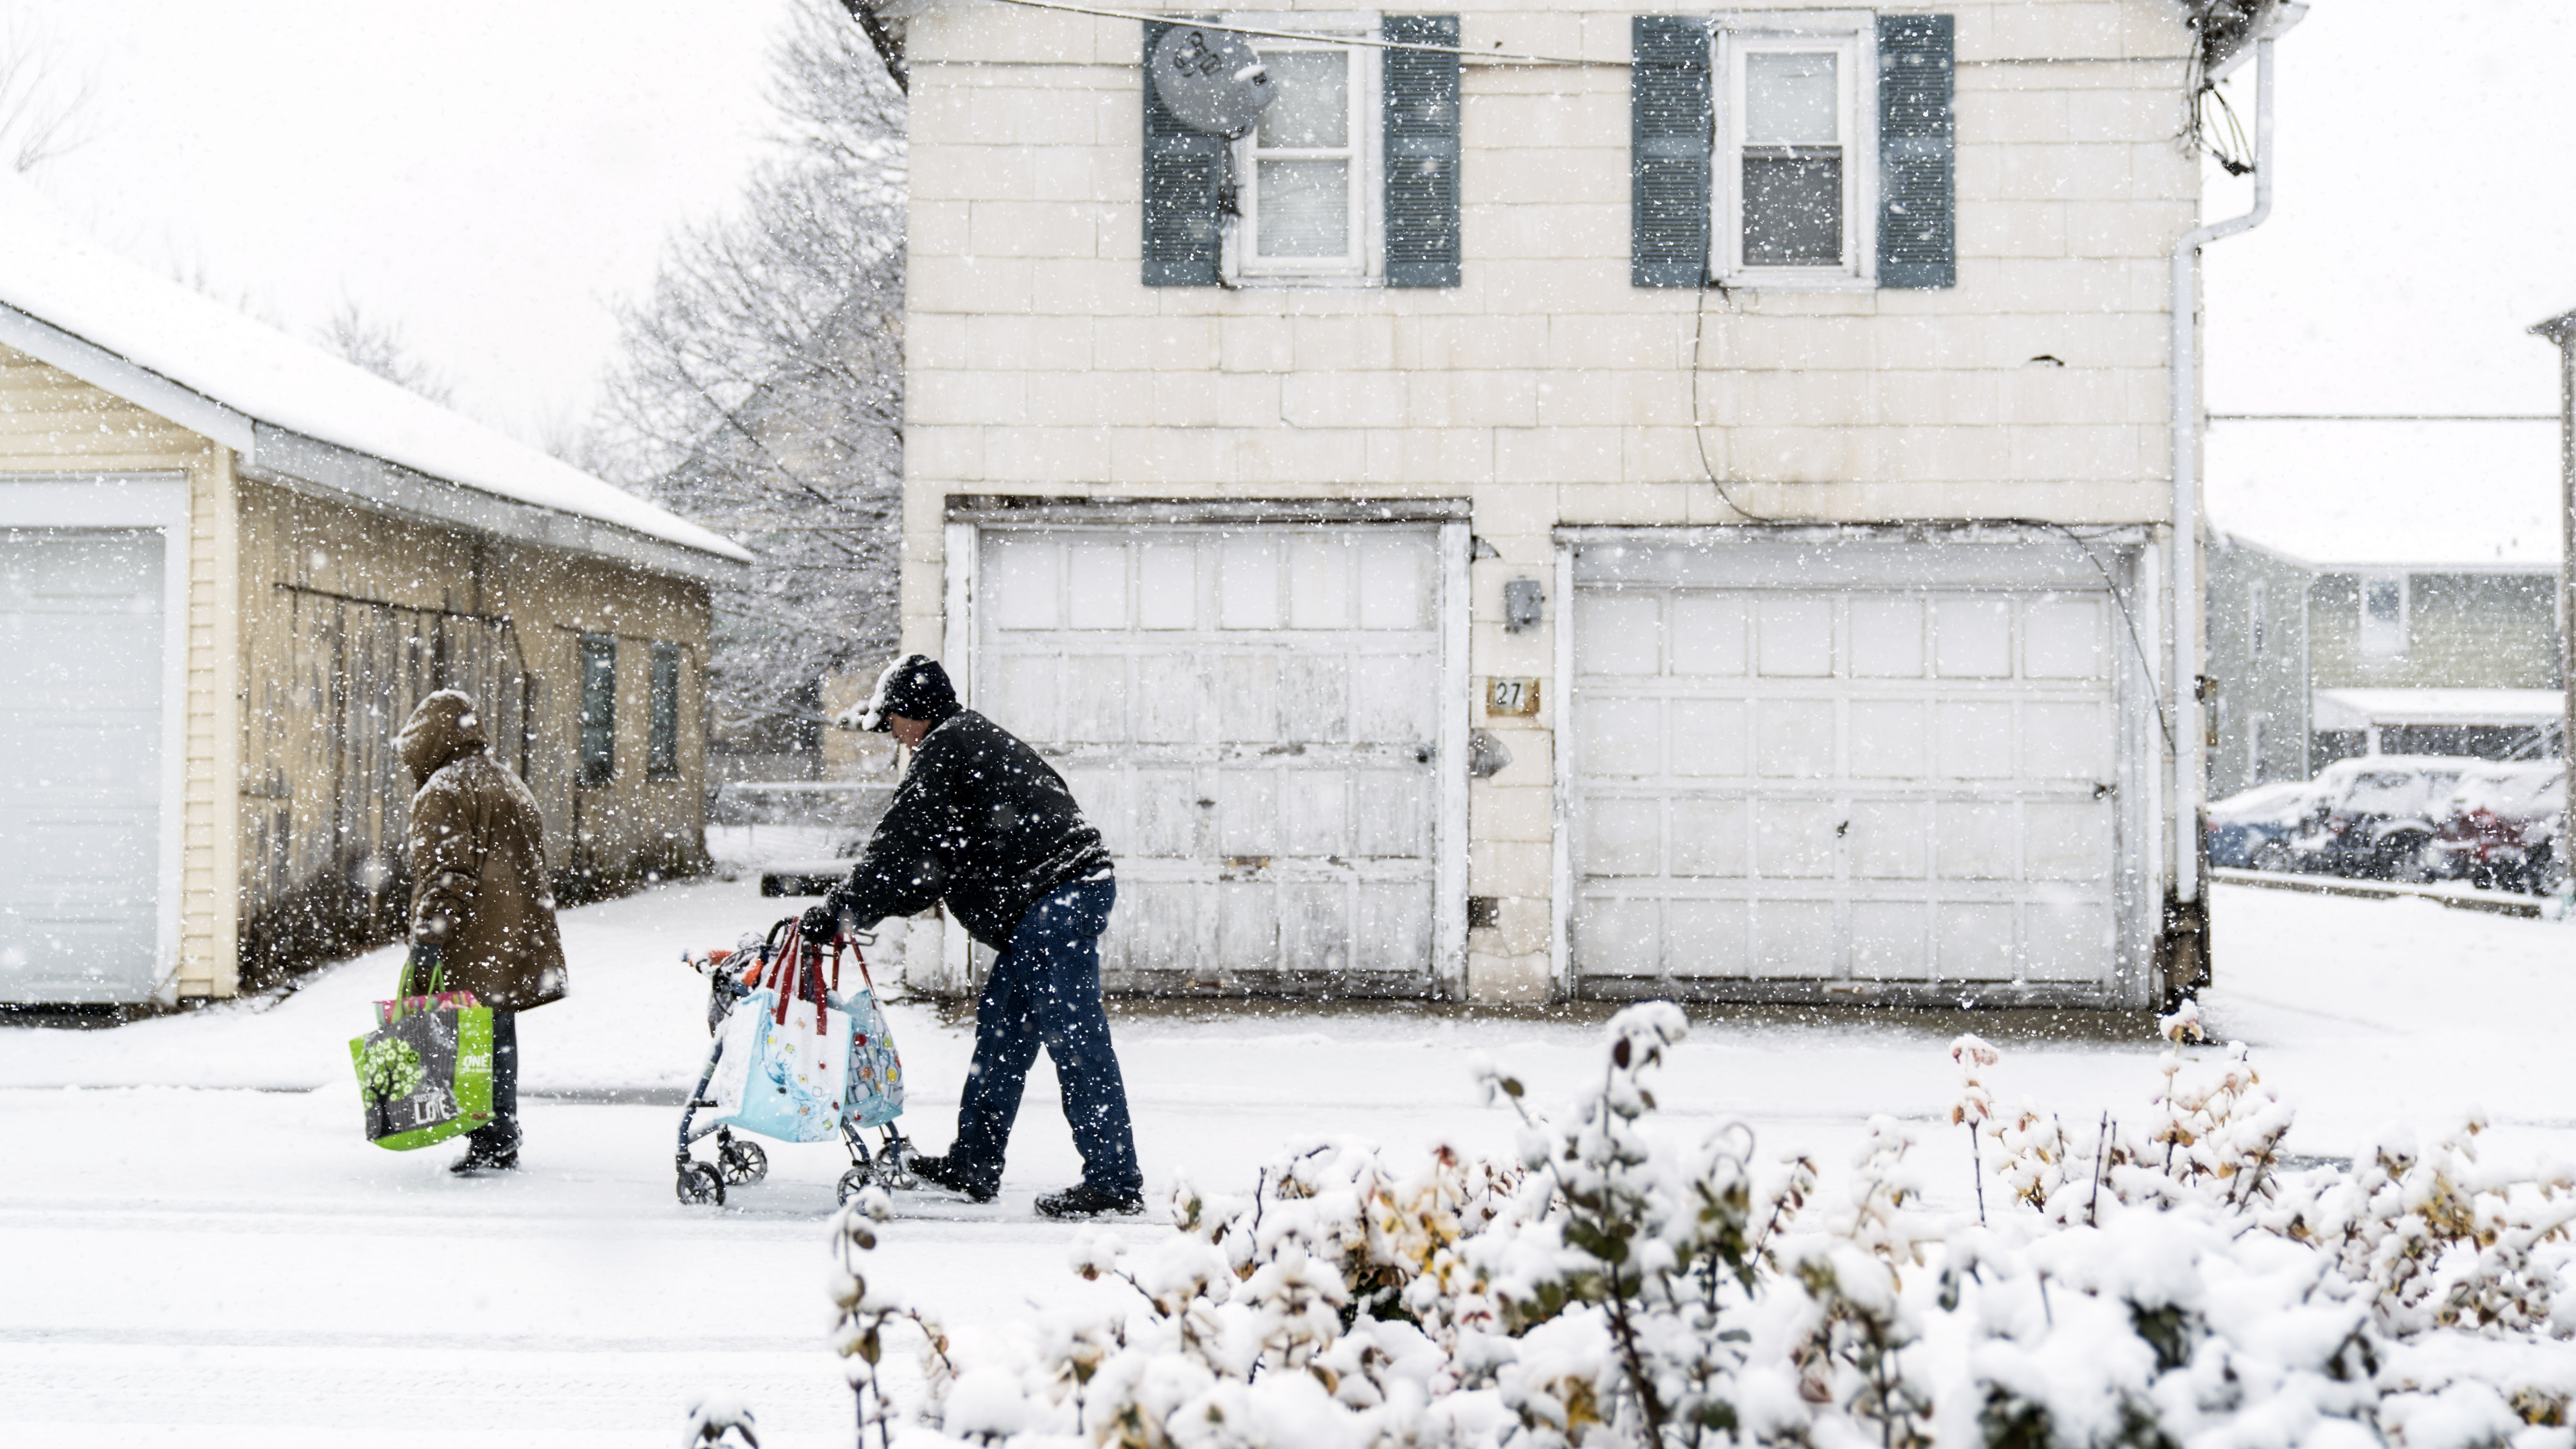 Snowy nor'easter threatening northeastern United States